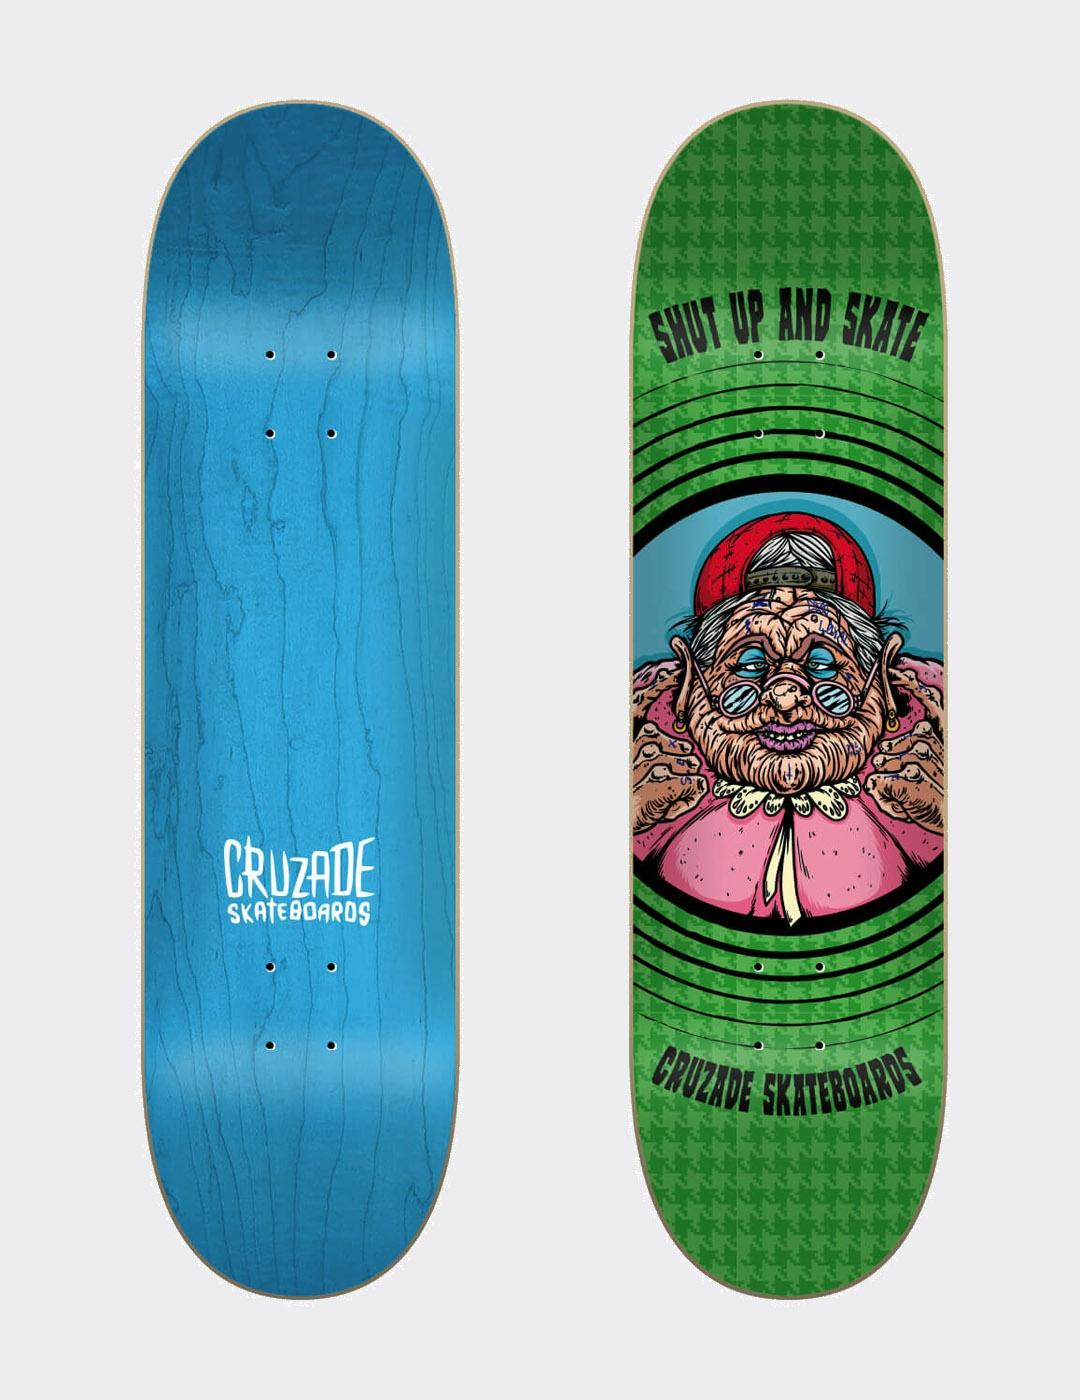 Tabla Skate Cruzade Shut Up And Skate 8.5' x 32.12